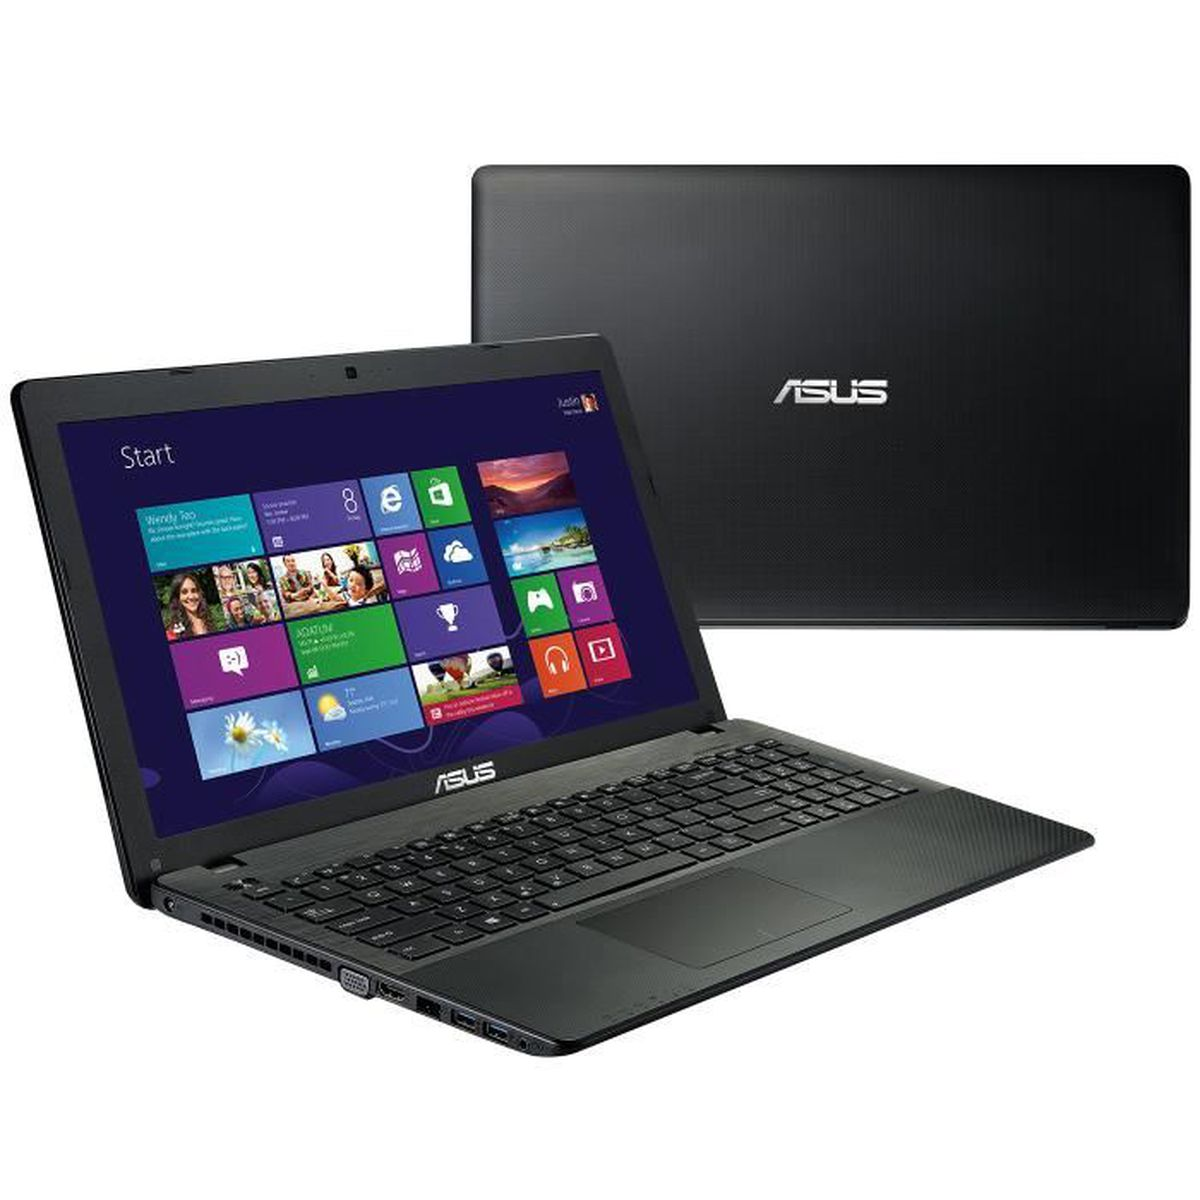 ordinateur portable asus 15 pouces x552mj sx046 intel quad core 4go ram 1to disque dur windows. Black Bedroom Furniture Sets. Home Design Ideas